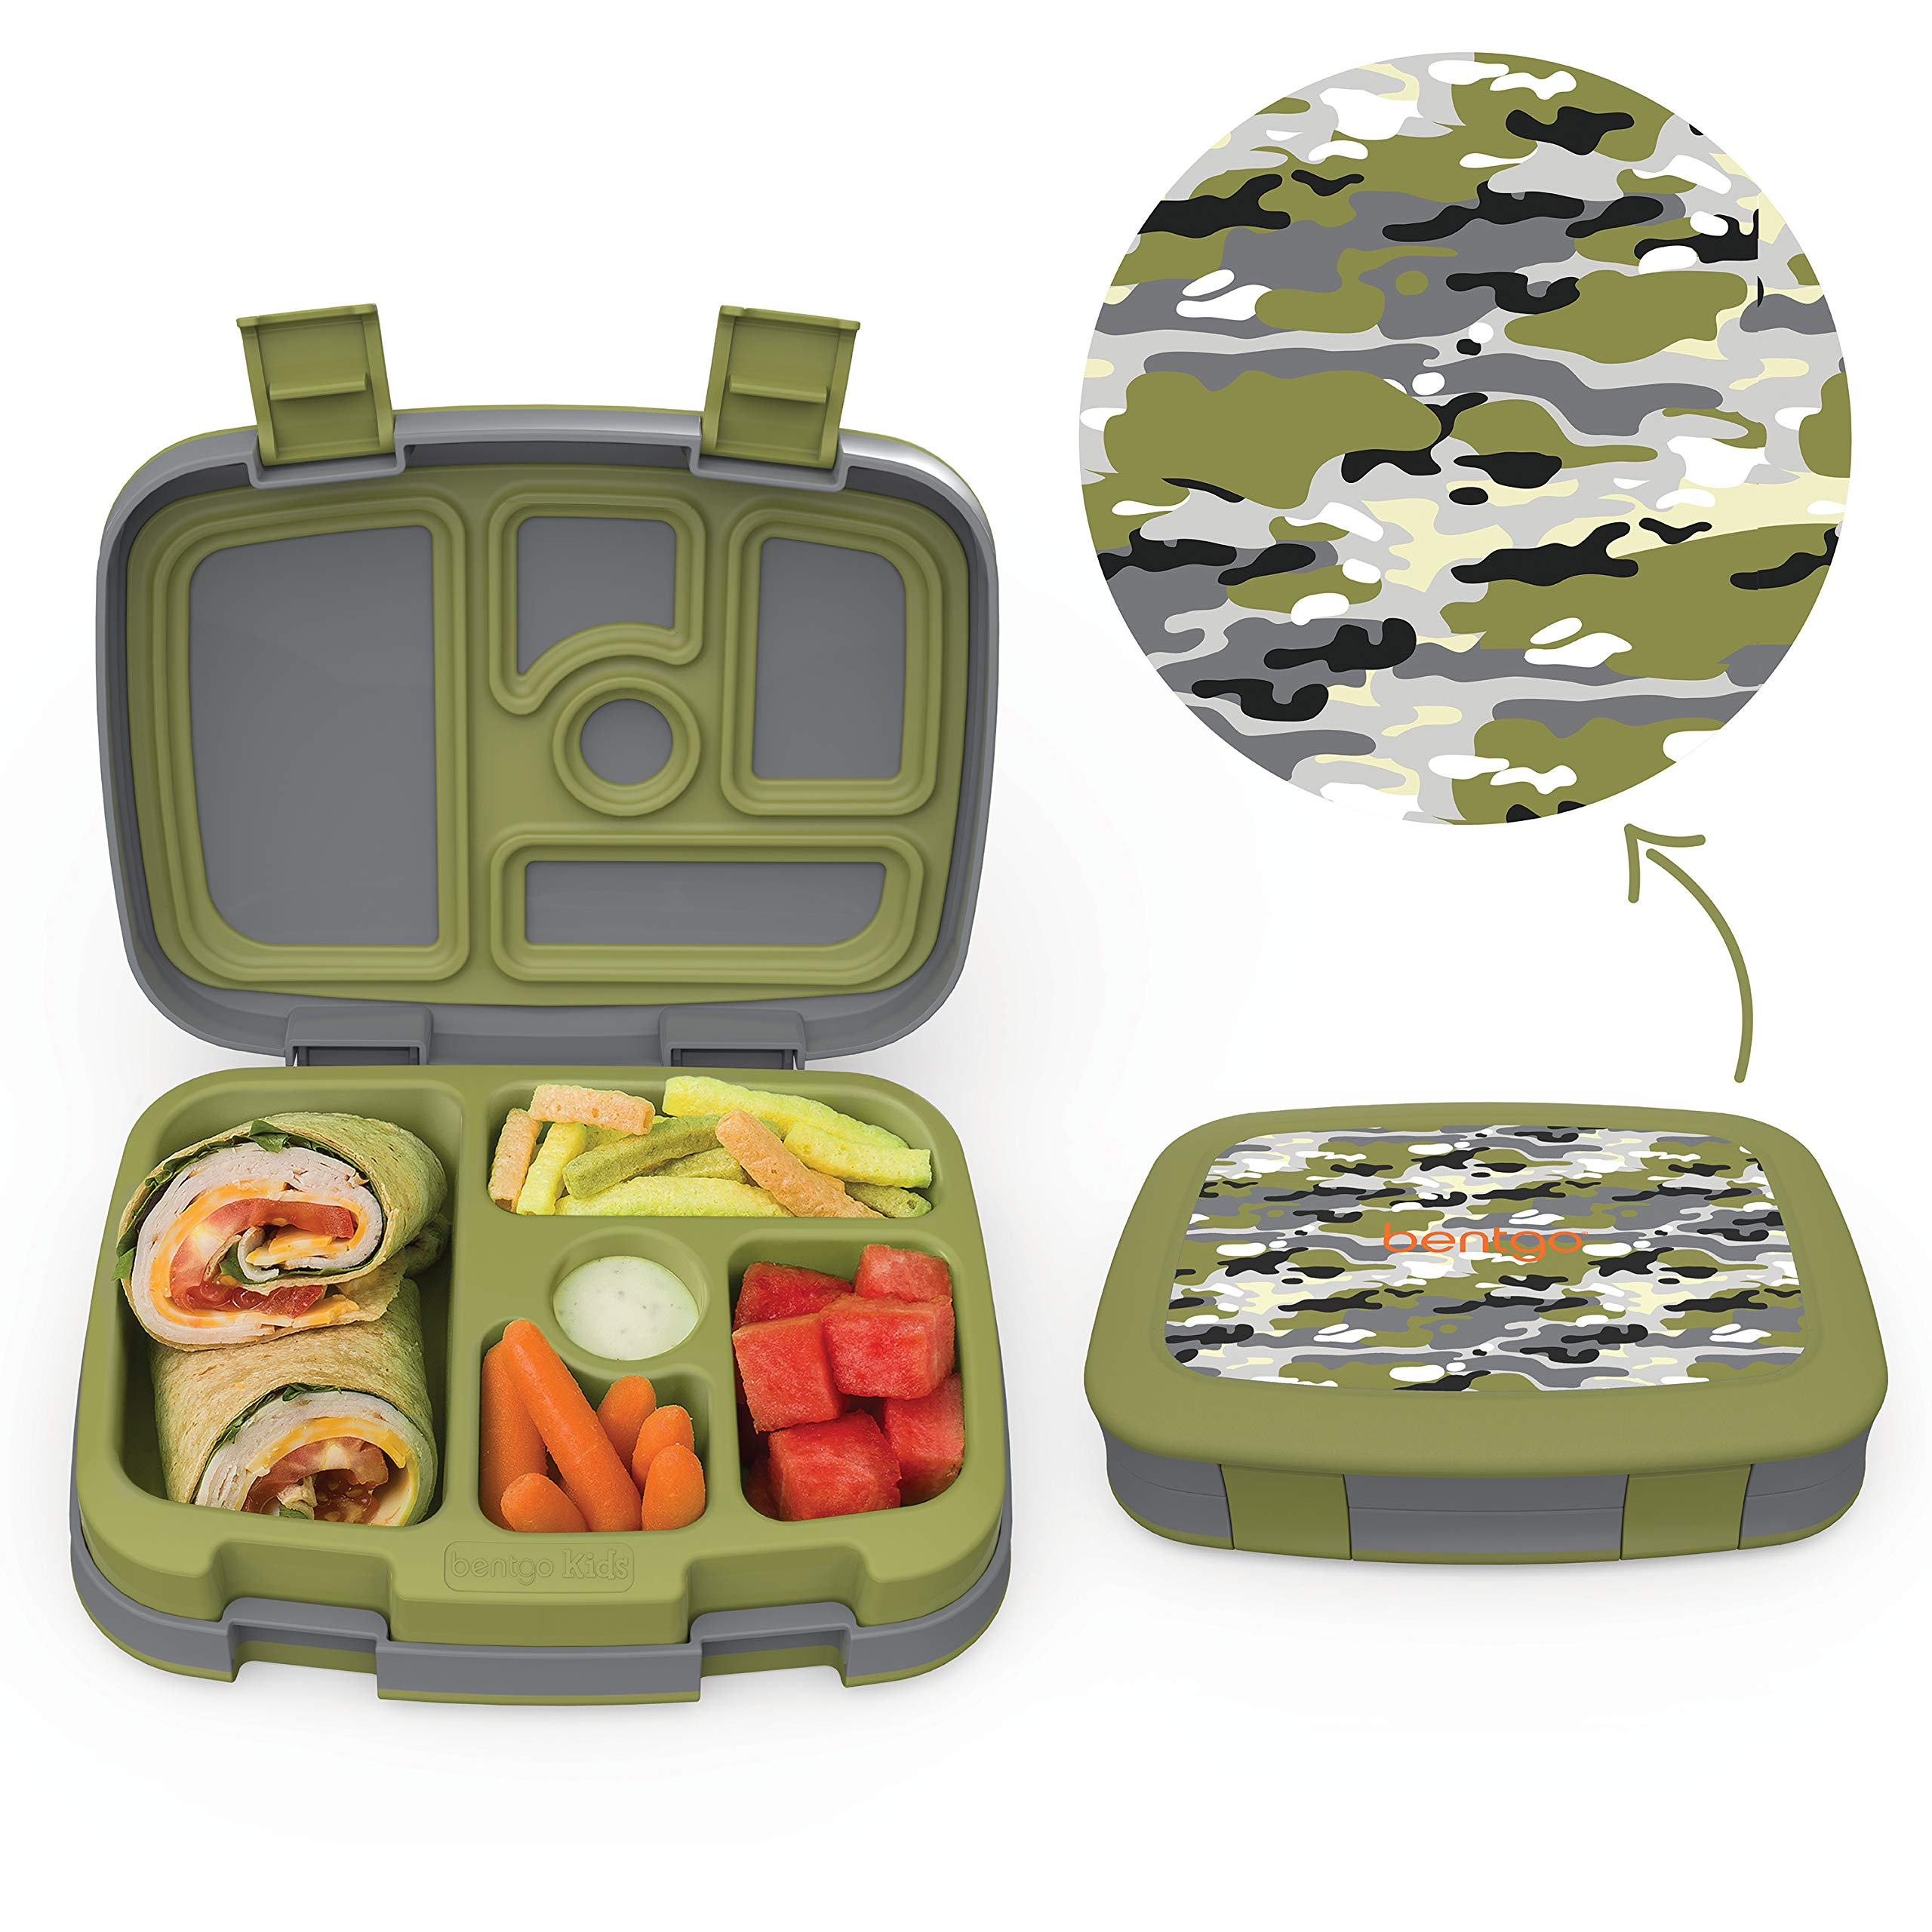 Bentgo Kids Prints (Camouflage) - Leak-Proof, 5-Compartment Bento-Style Kids Lunch Box - Ideal Portion Sizes for Ages 3 to 7 - BPA-Free and Food-Safe Materials